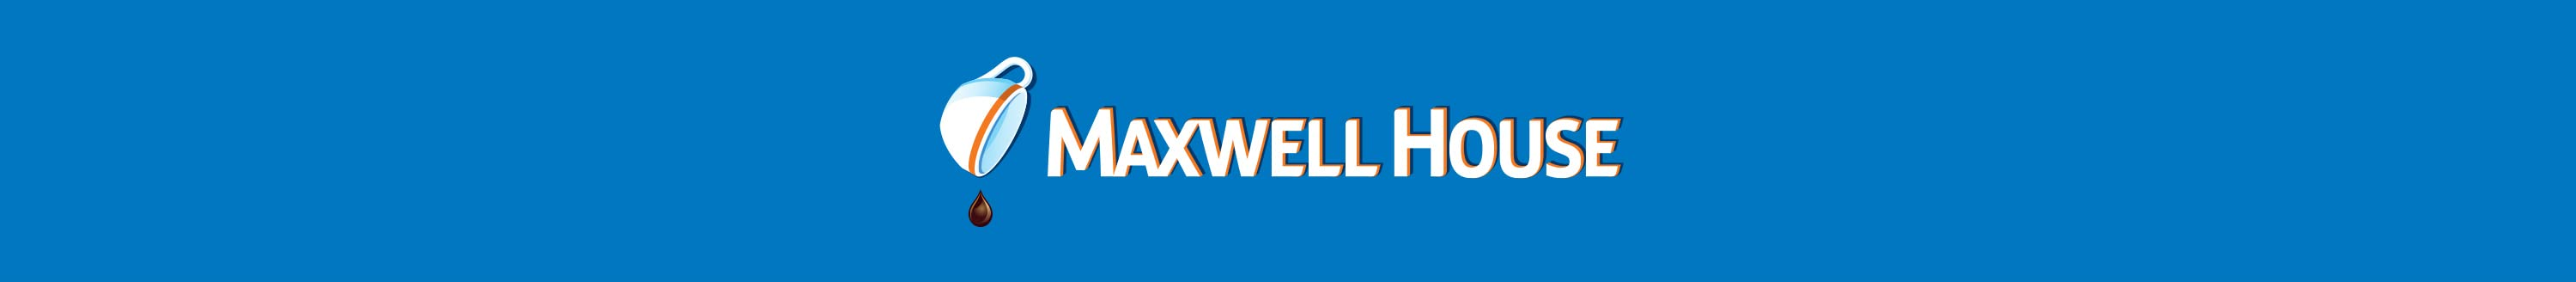 Maxwell House Brings You